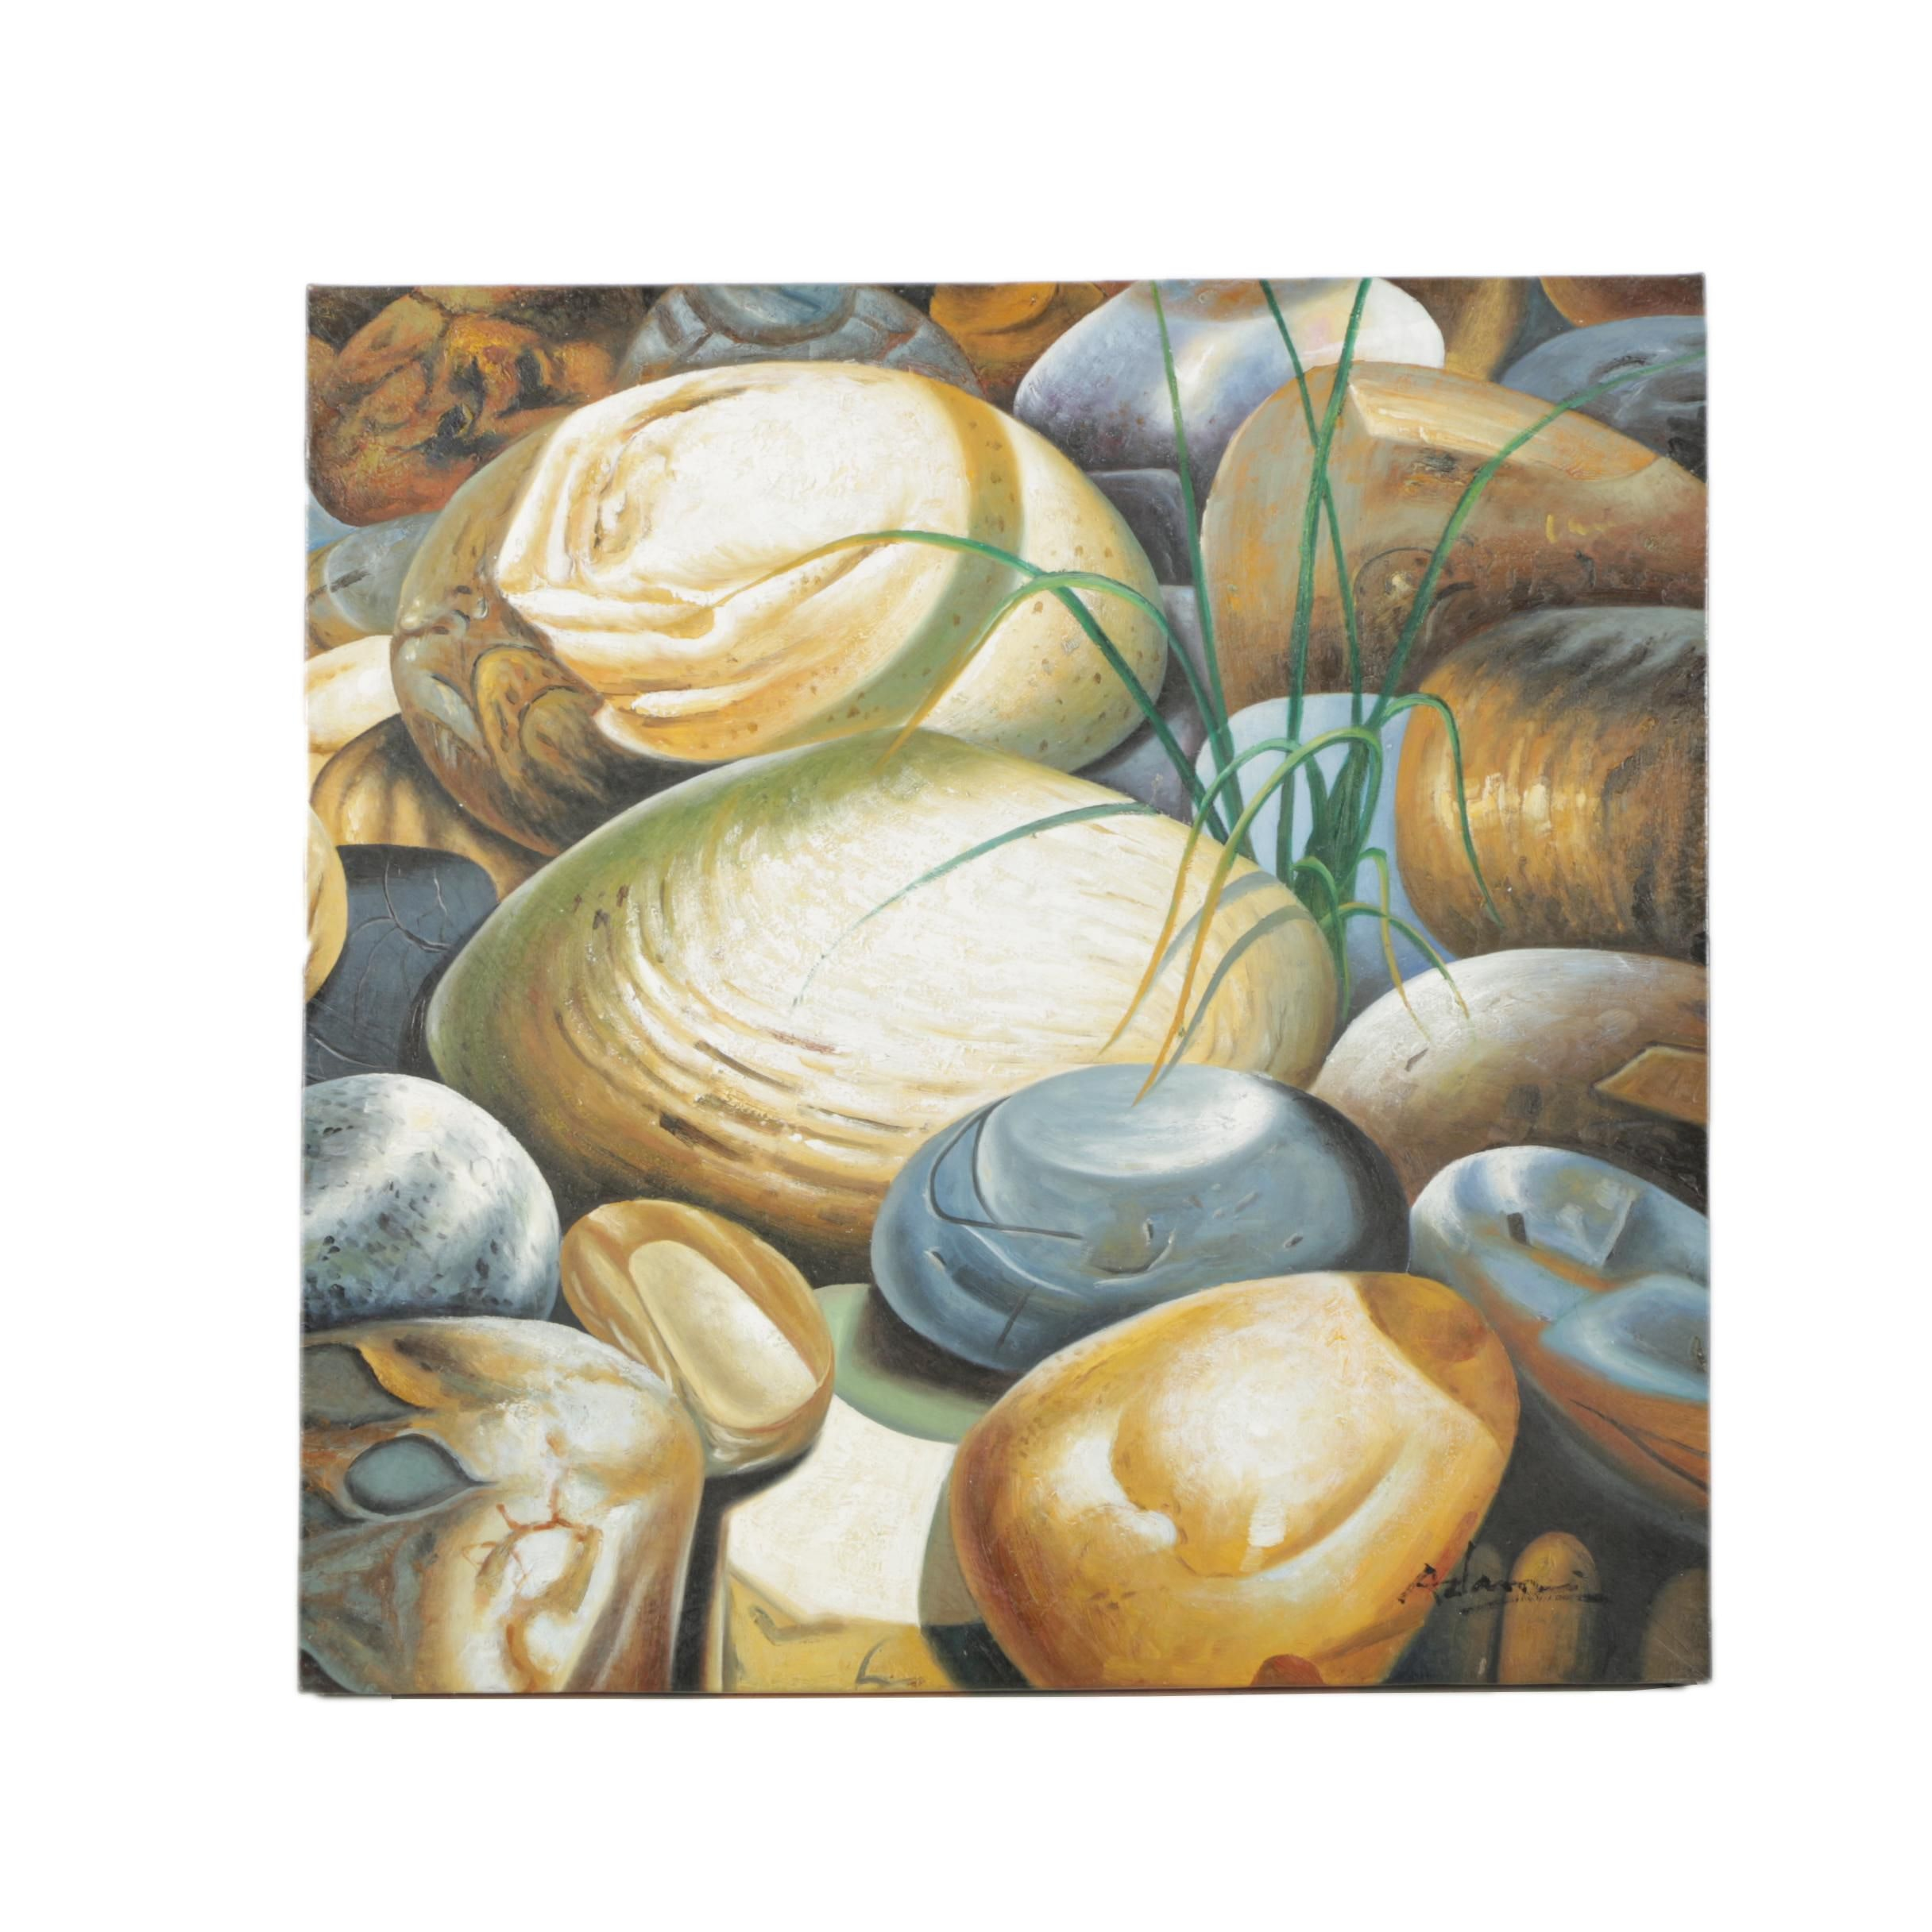 Adam Oil on Canvas Painting of Pebbles